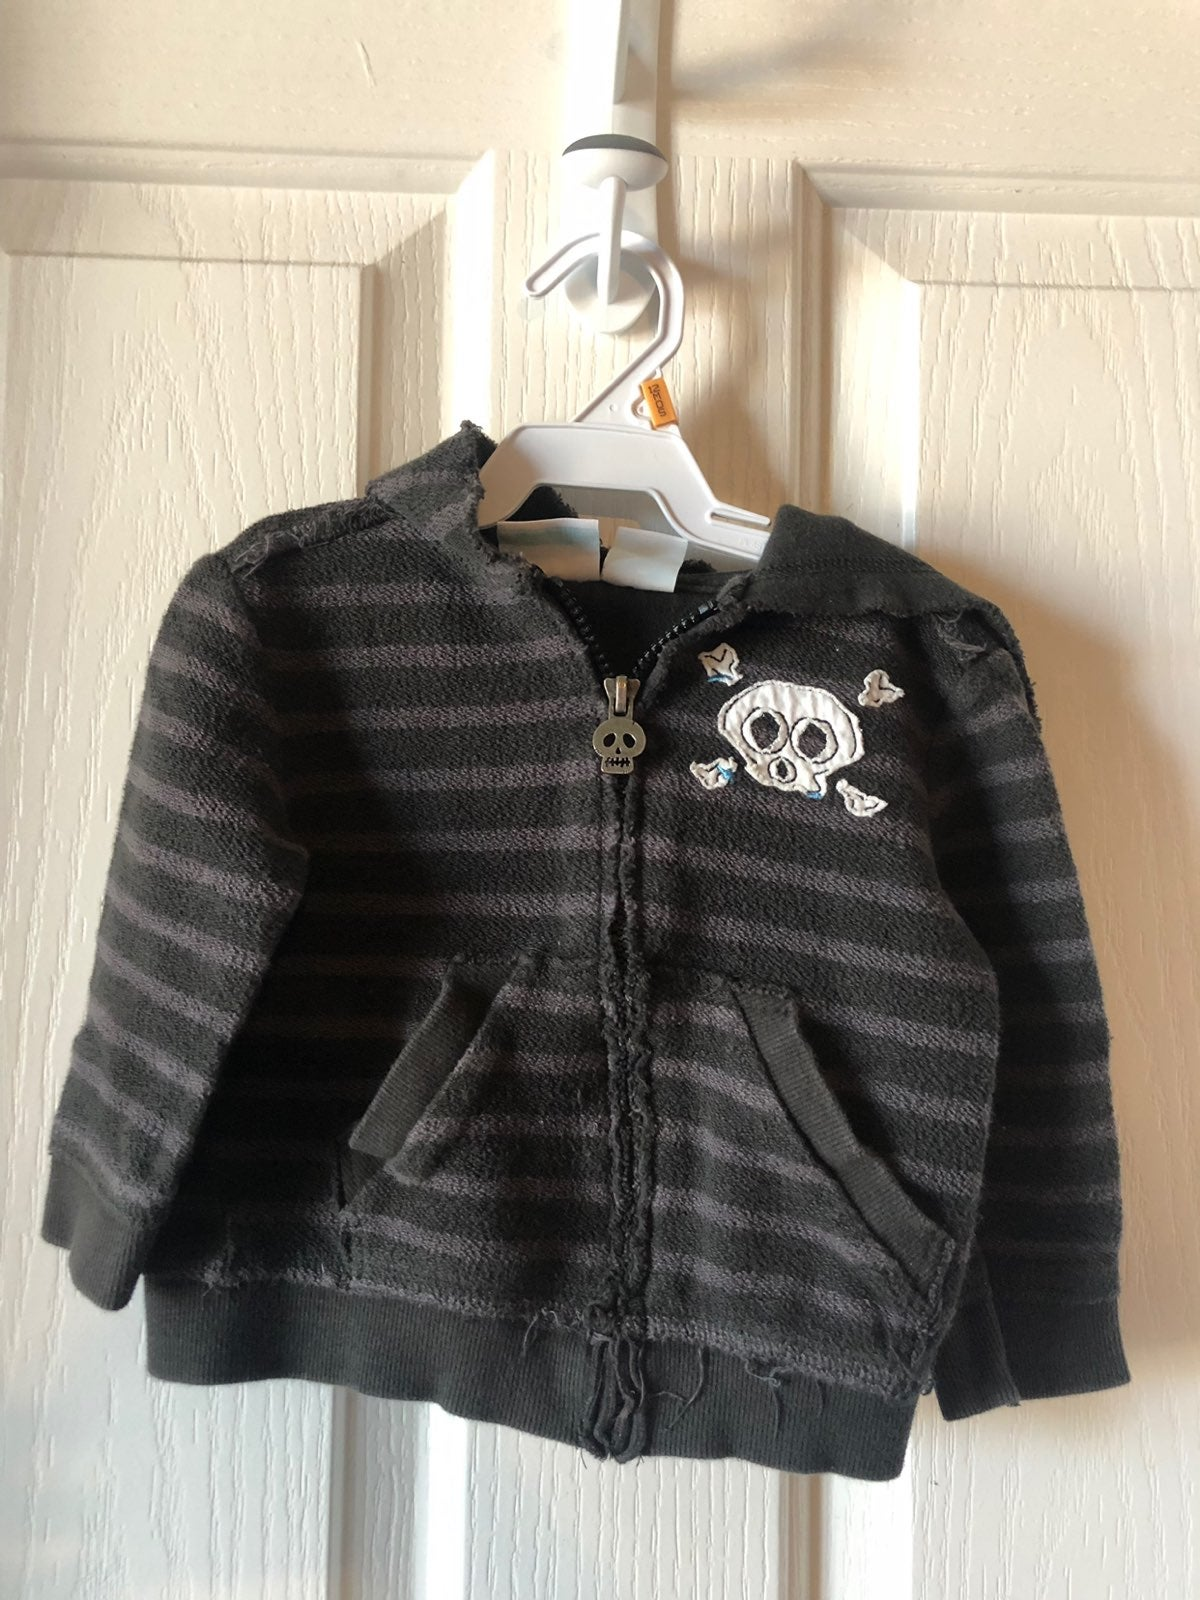 Amy Coe Skull Hooded Jacket 12 Months